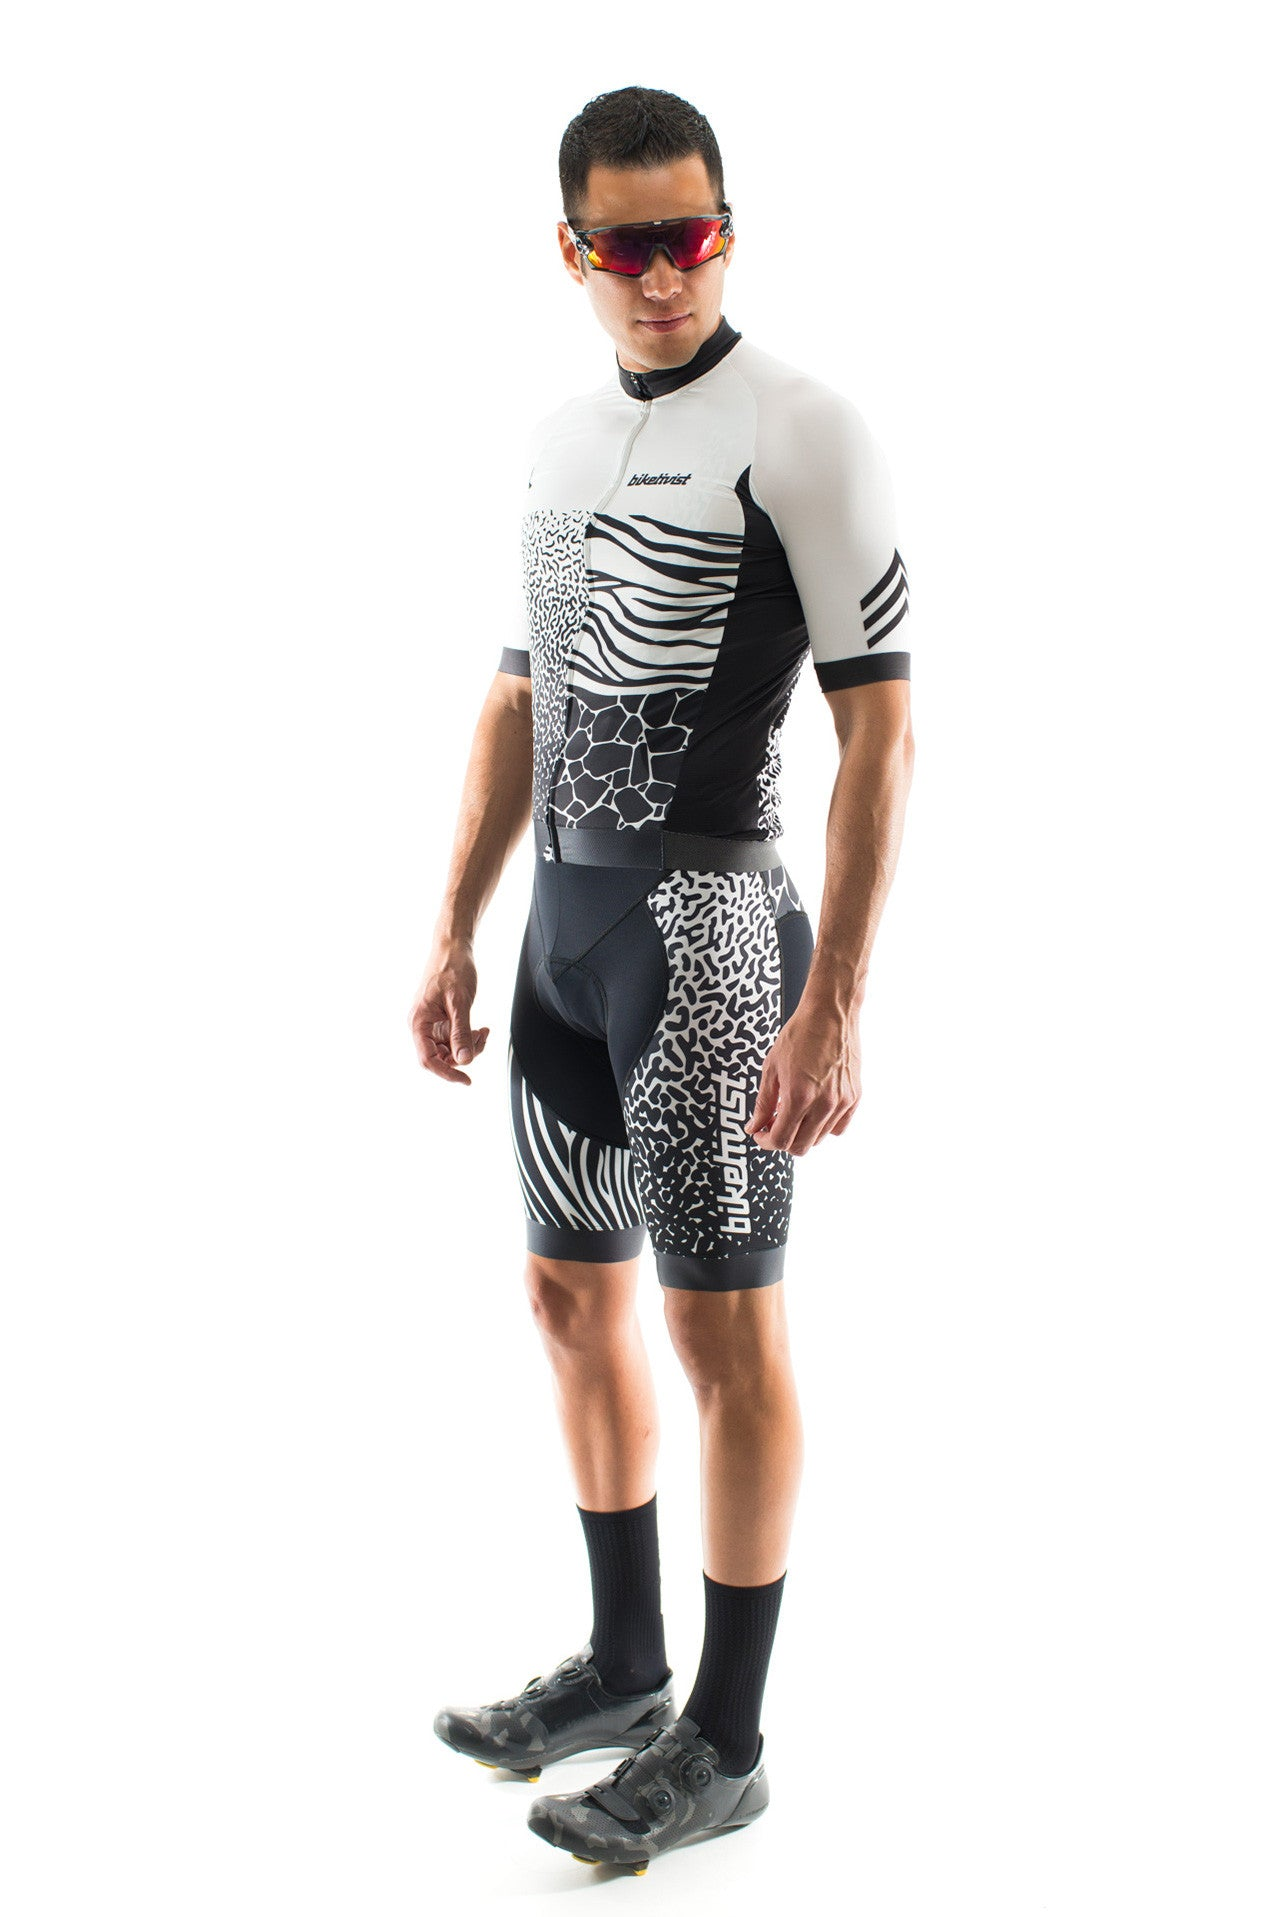 The Penumbra Limited Edition Kit by Biketivist